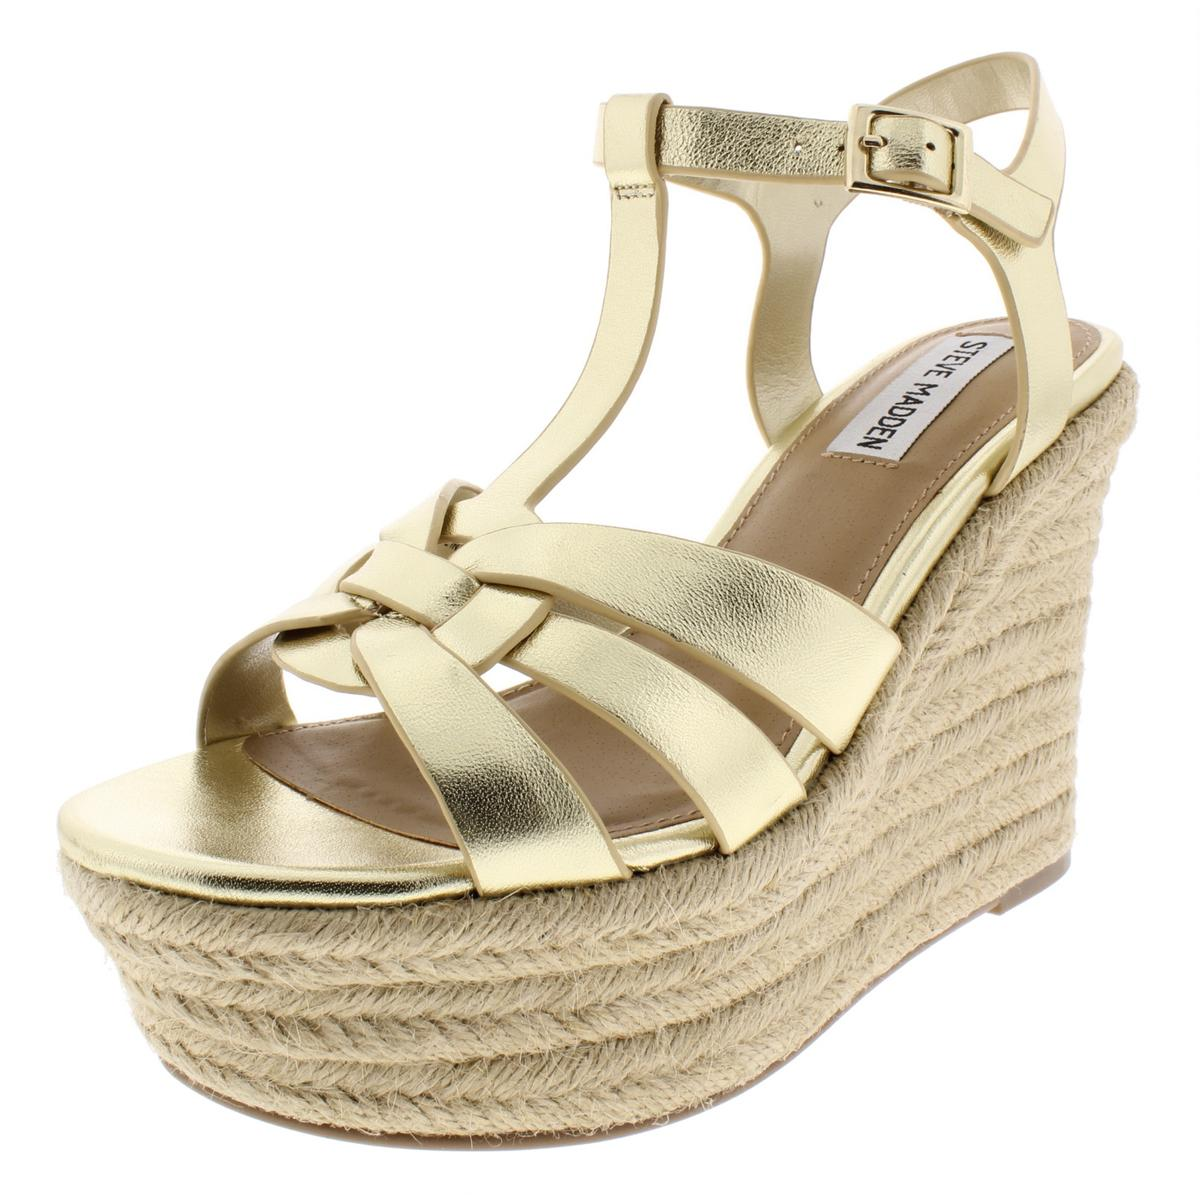 4fe7b9597b0 Details about Steve Madden Womens Keesha Gold Espadrilles Wedges 7.5 Medium  (B